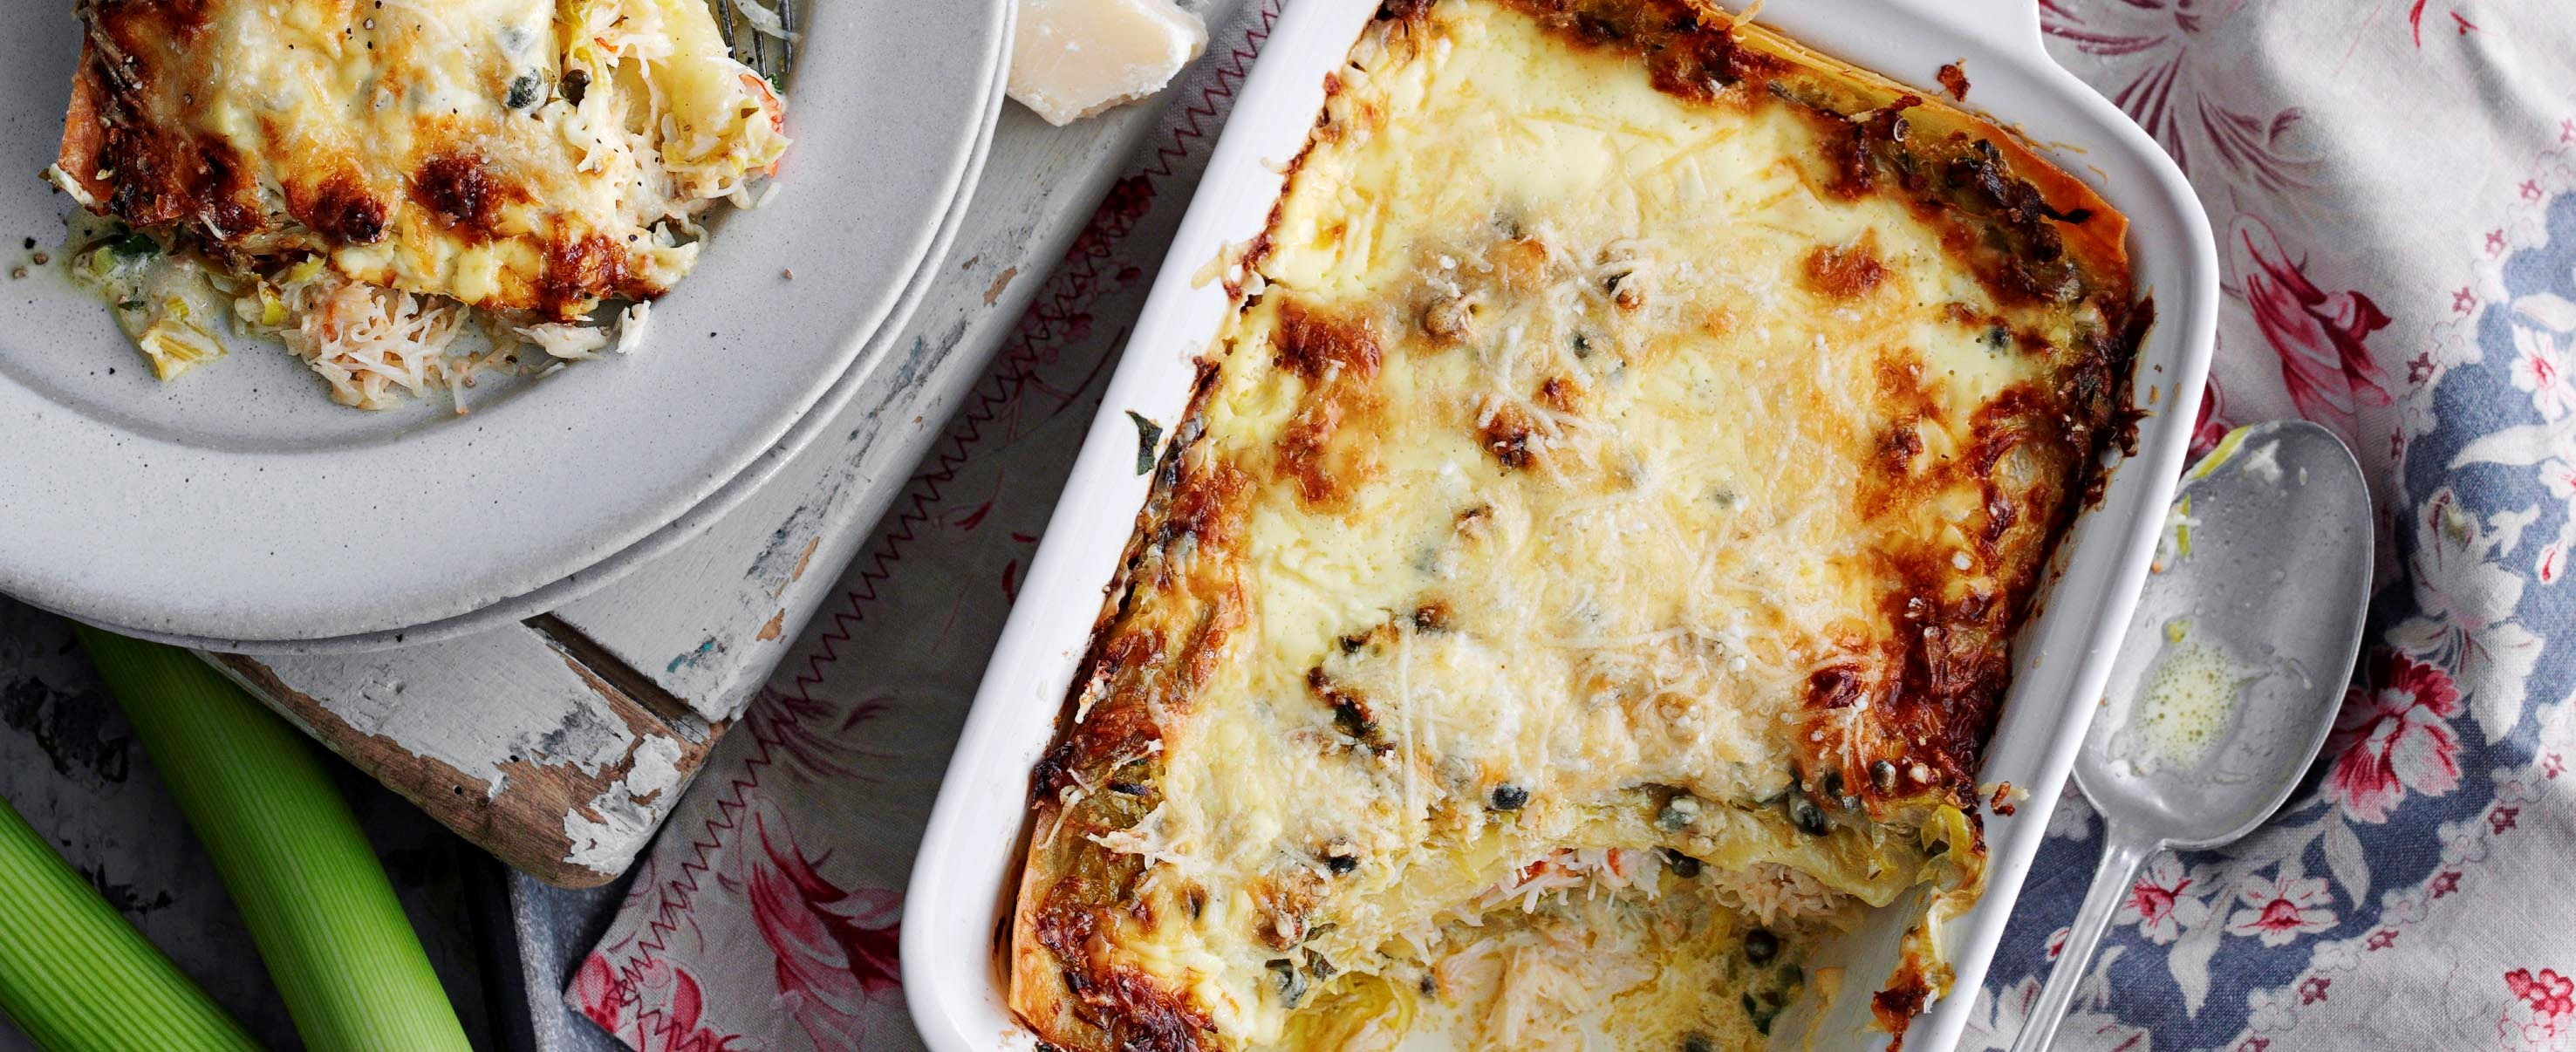 Leek and crab lasagne